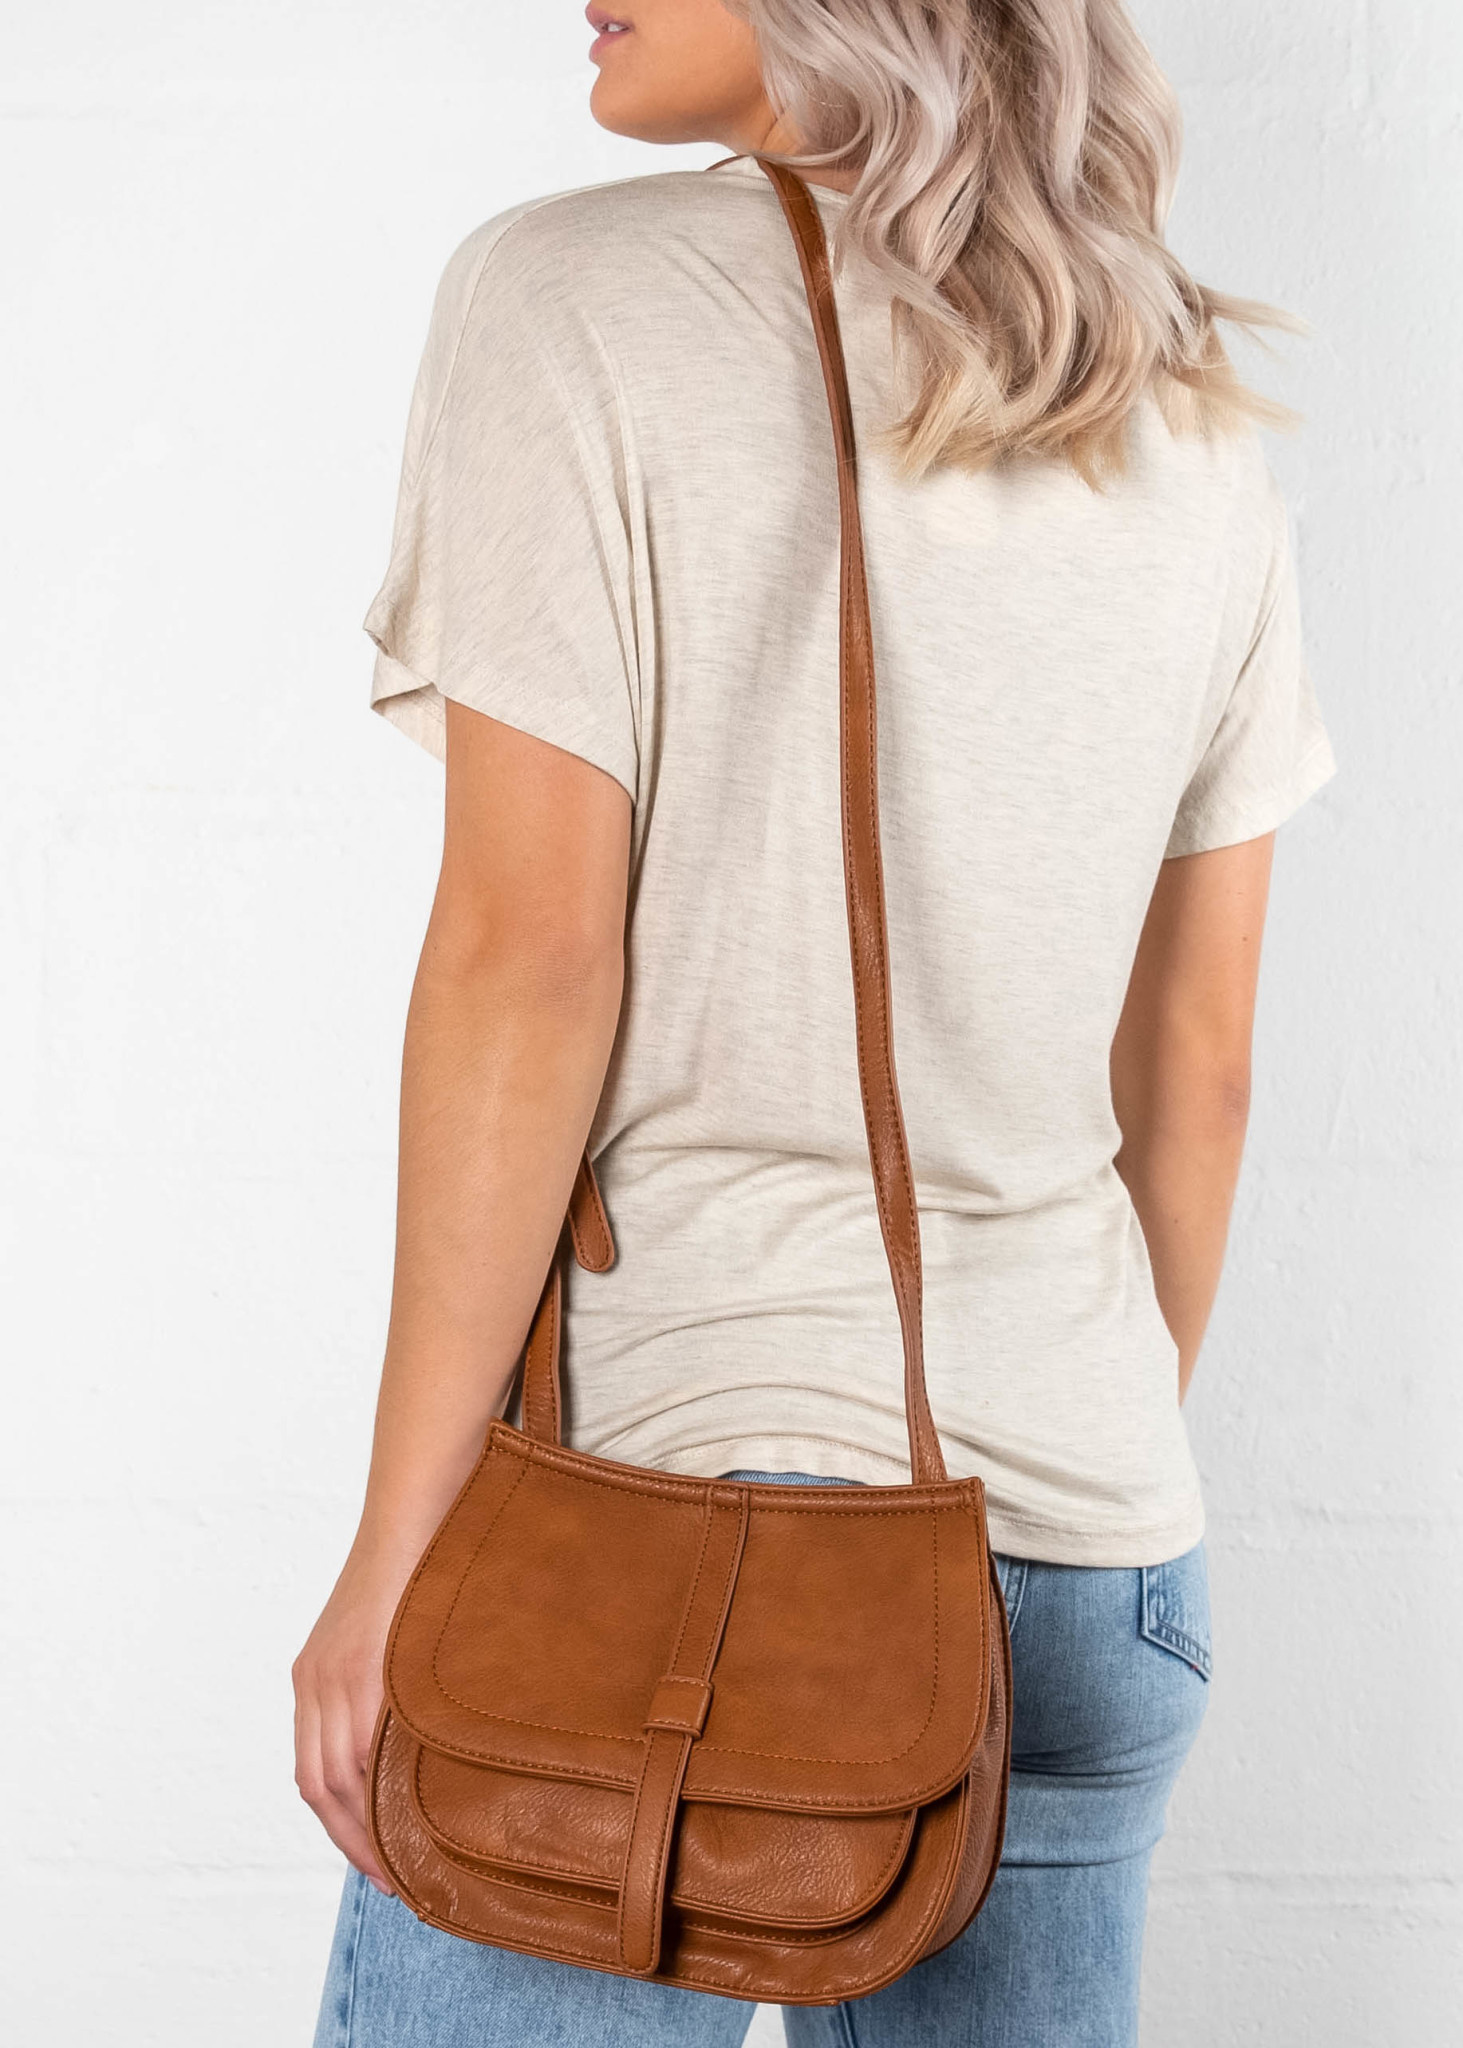 HIGHER LOVE CROSSBODY BAG